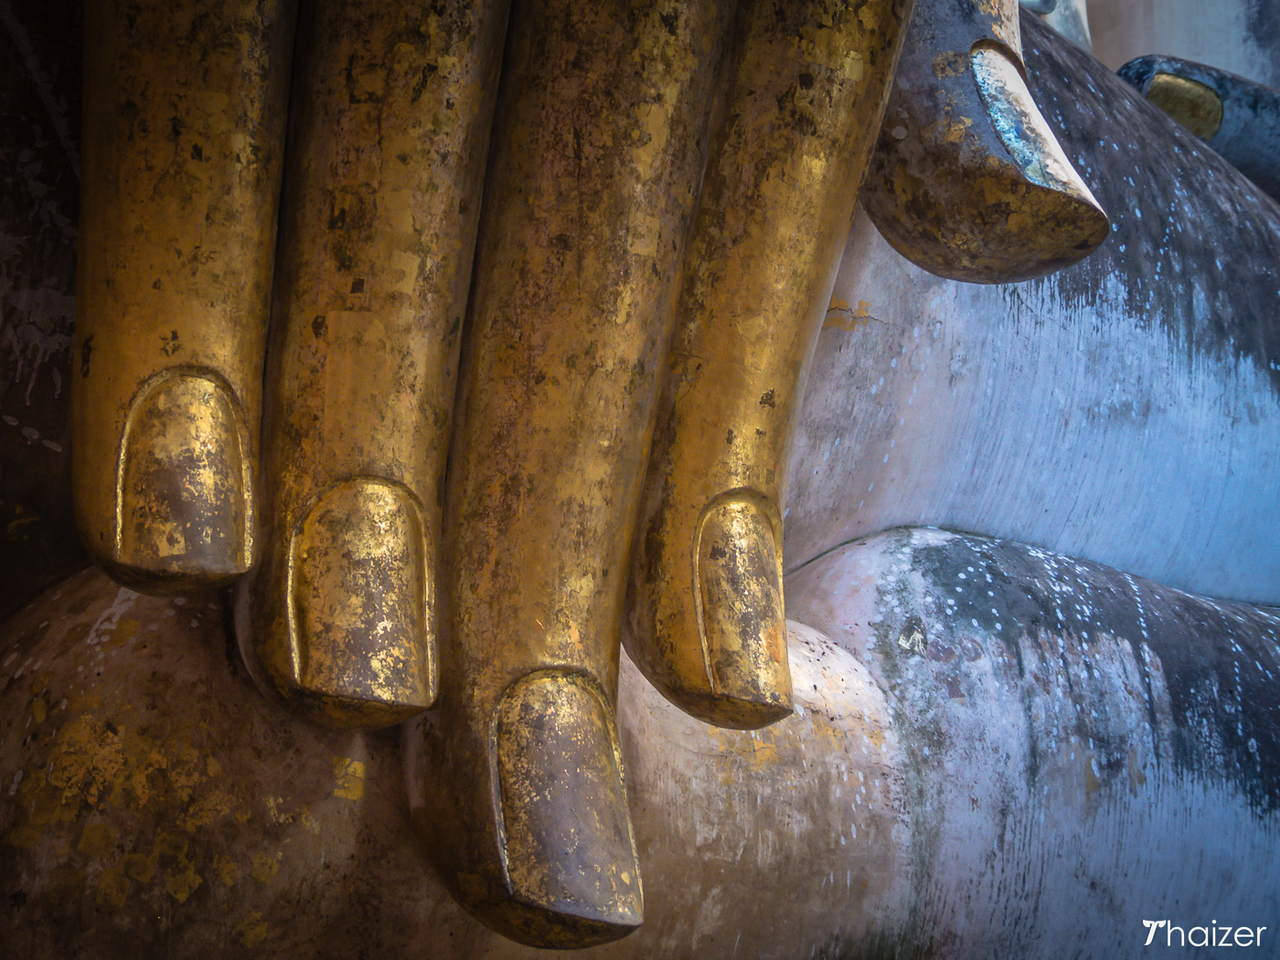 gold-leaf on fingers of Phra Achana at Wat Si Chum in Sukhothai